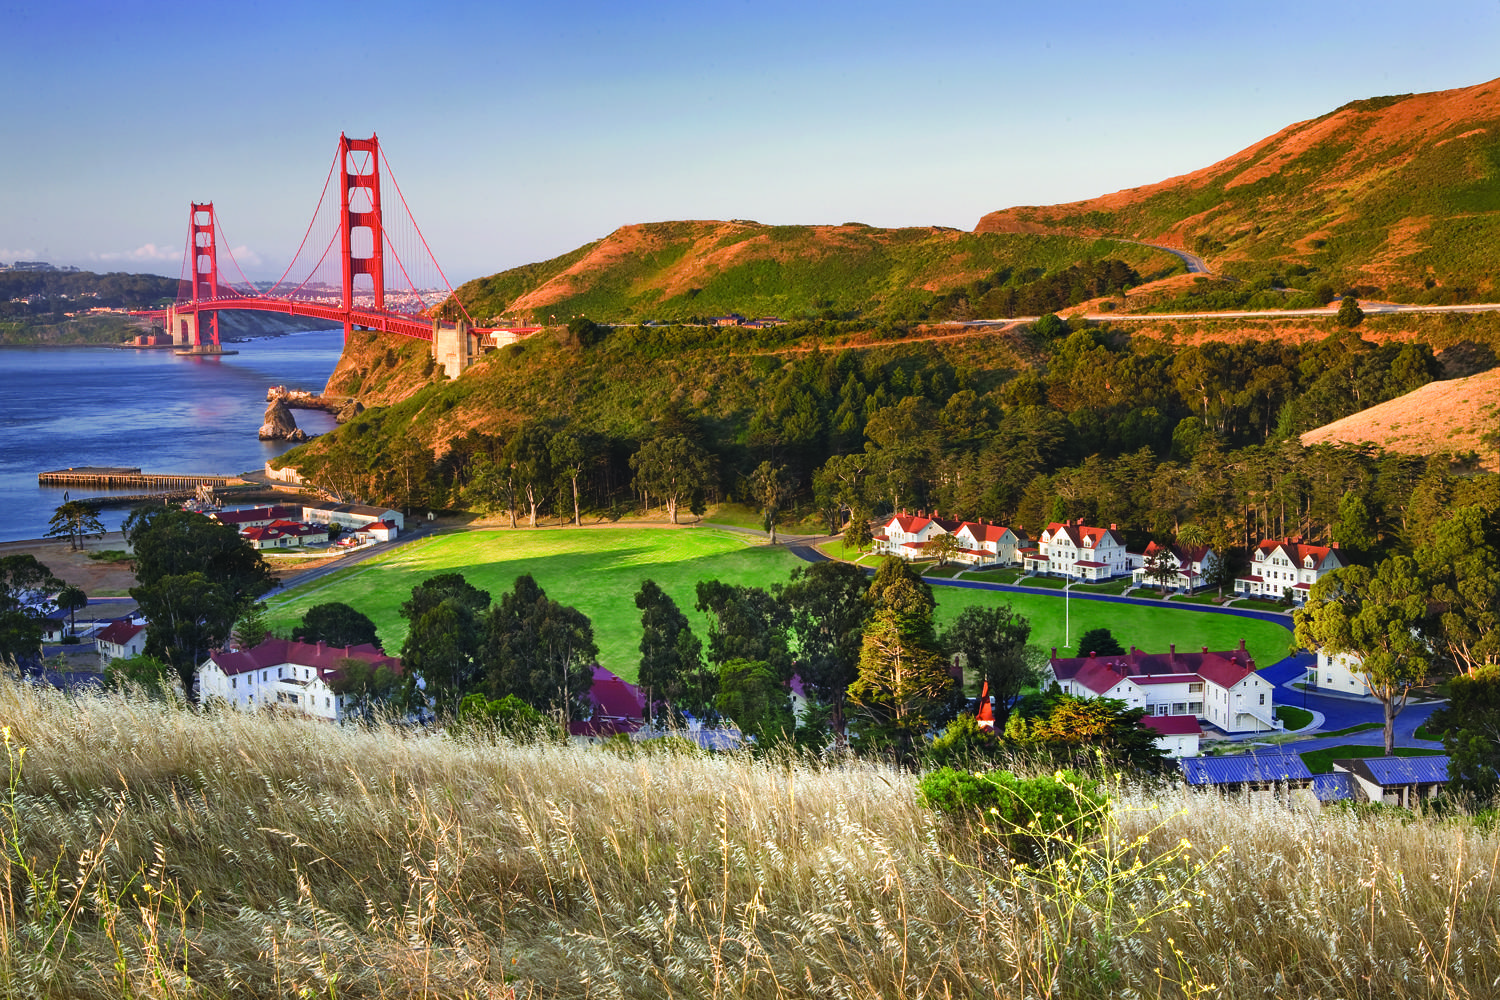 amazing views and ambiance at cavallo point lodge